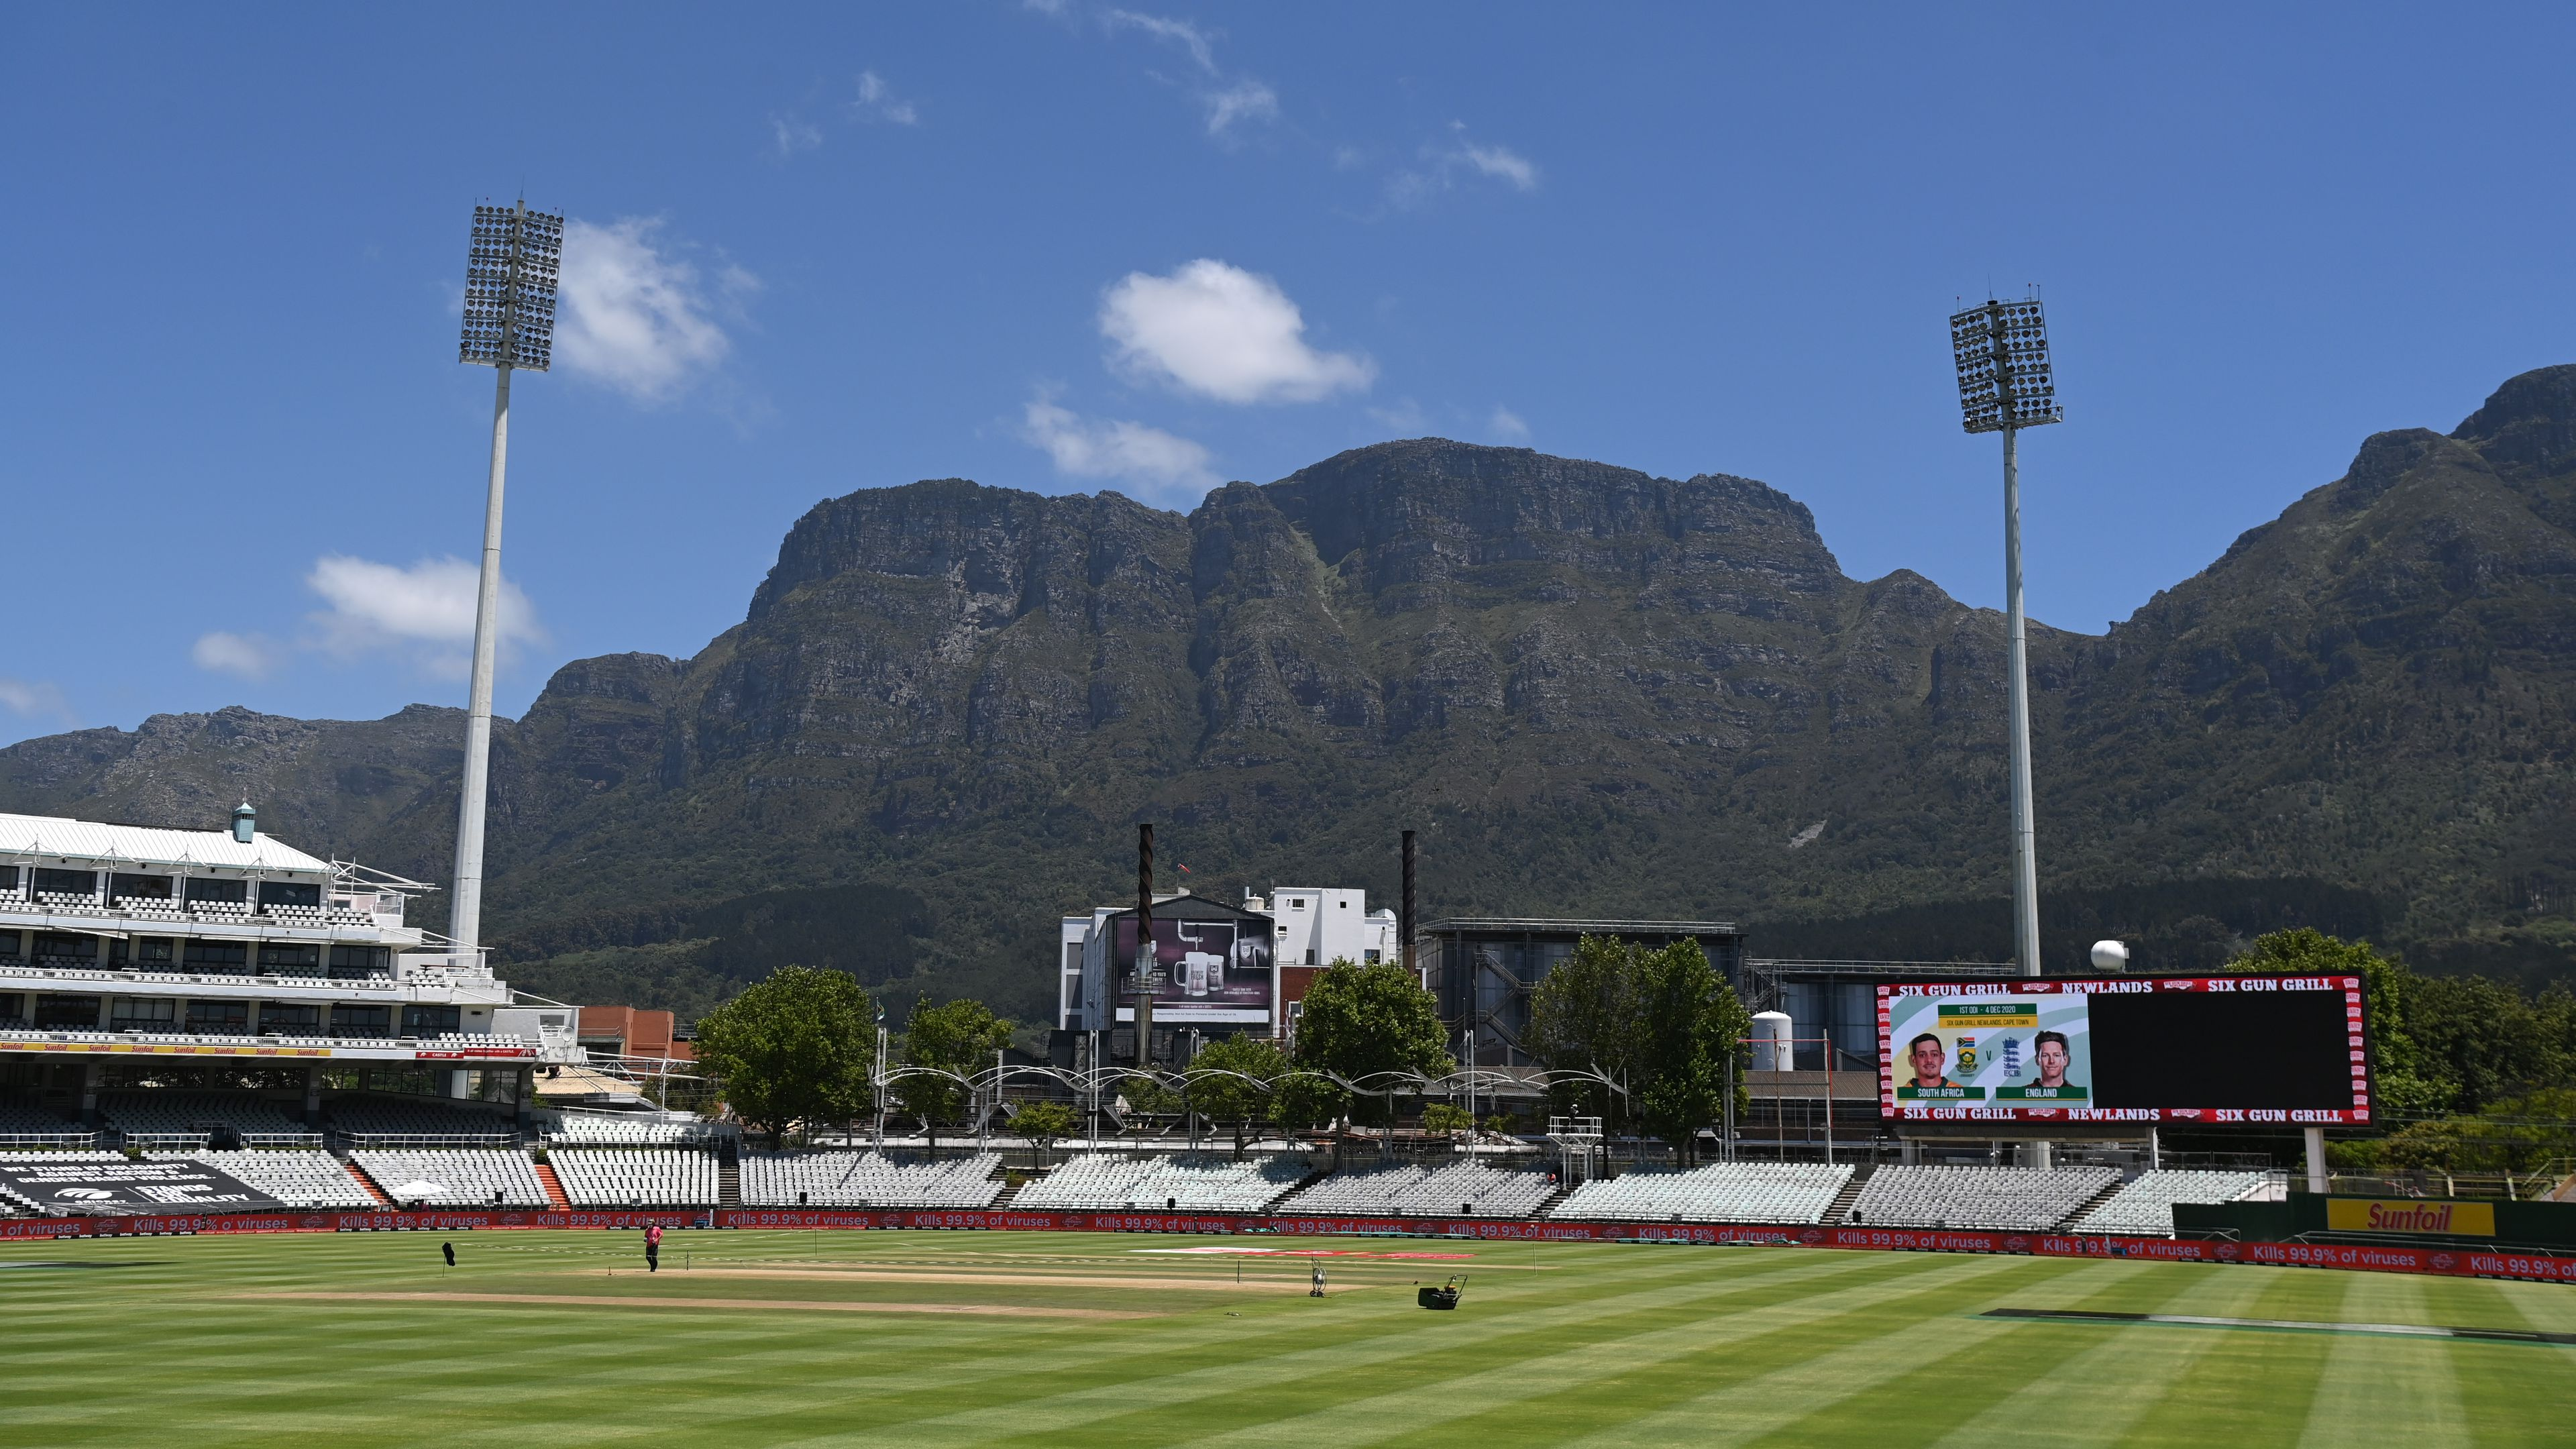 South Africa vs England ODI postponed after a player tests positive for coronavirus